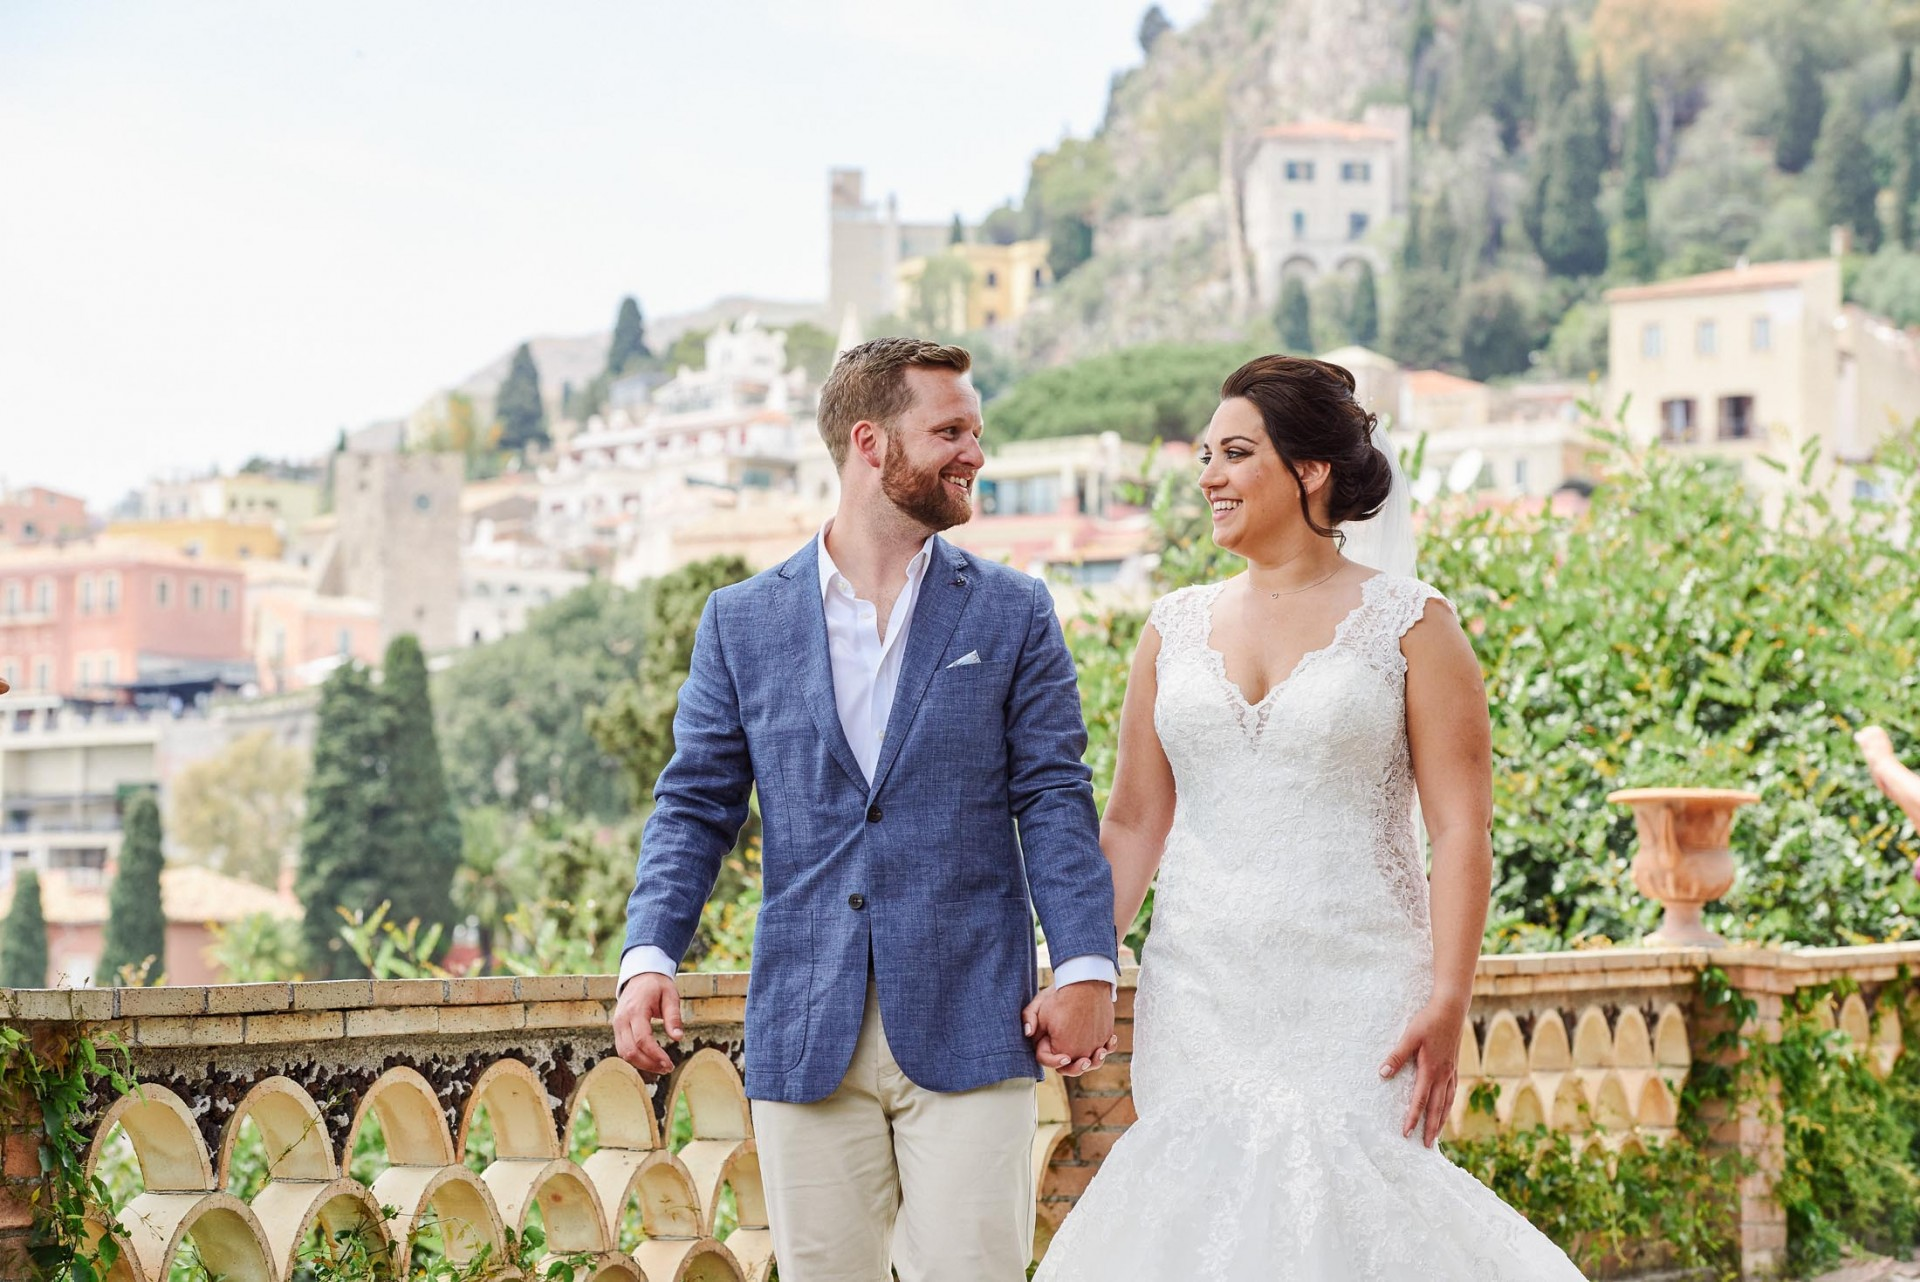 Bride and groom laughing together whilst walking with stunning views of Taormina, Sicily behind them